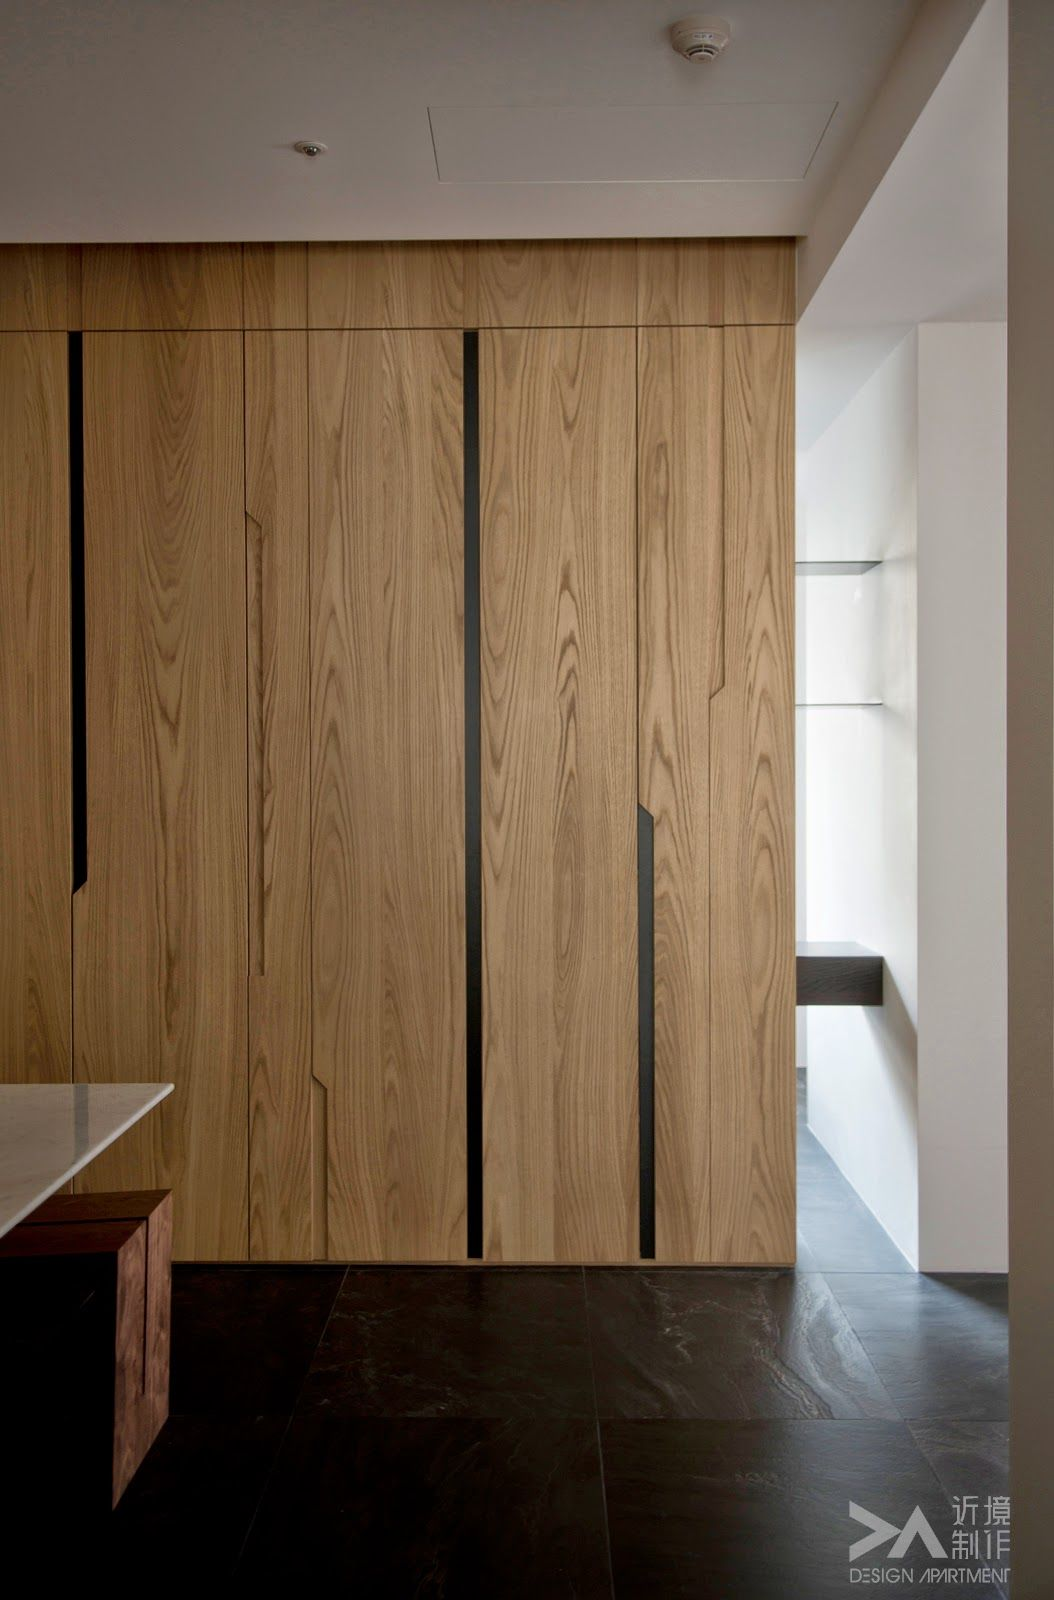 近.觀/云云 Wardrobe doors, Cupboard design, Wardrobe design